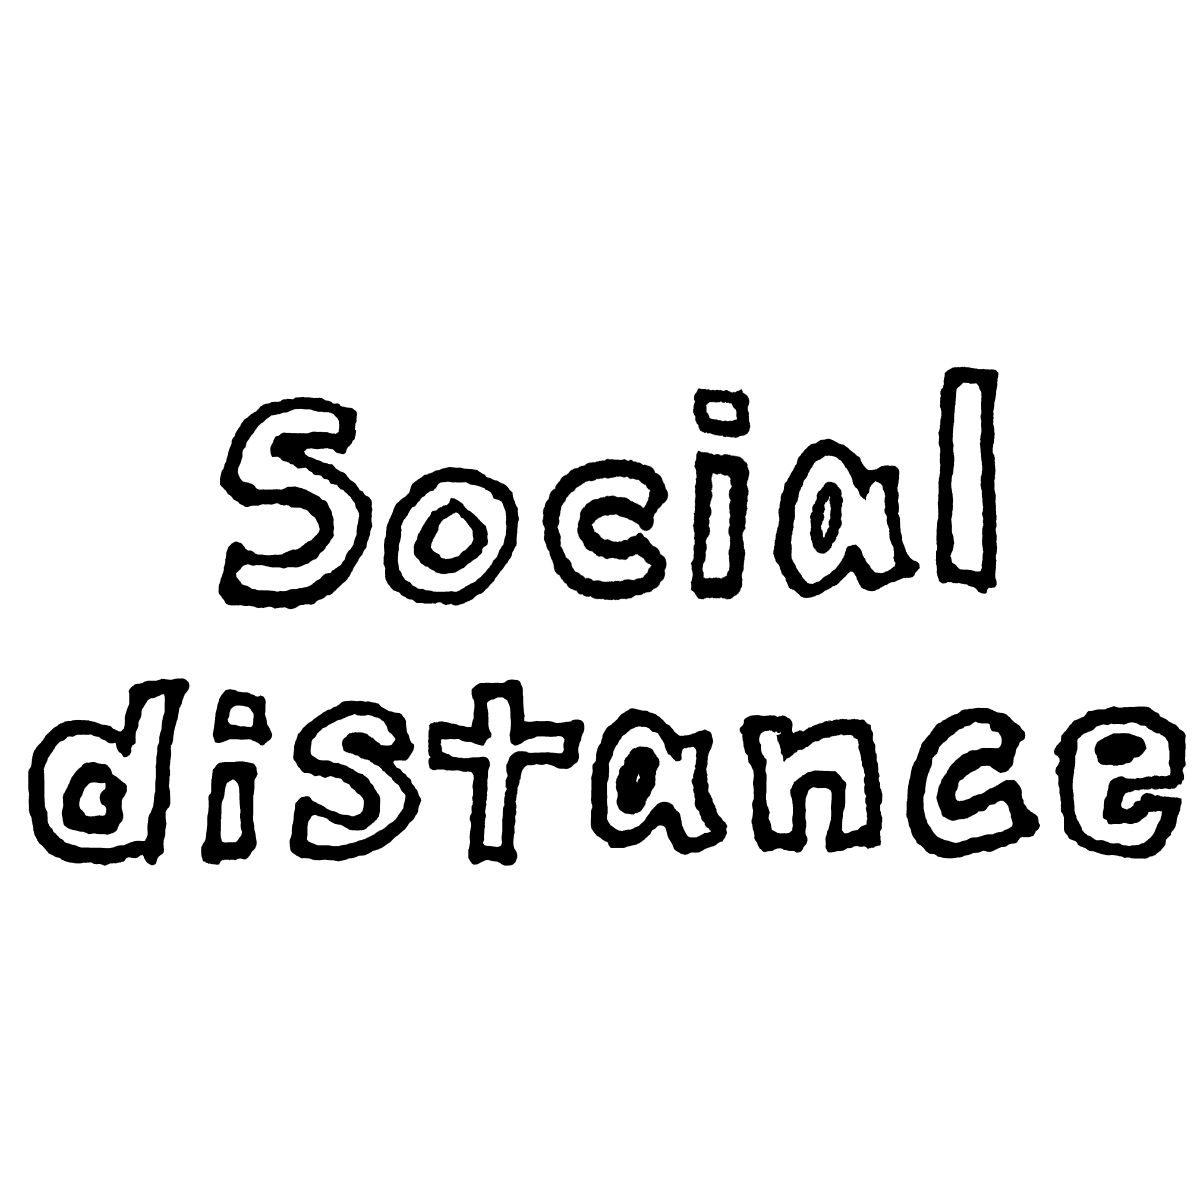 Social distance 文字(3種)のイラスト / Social distance character (3 types) Illustration